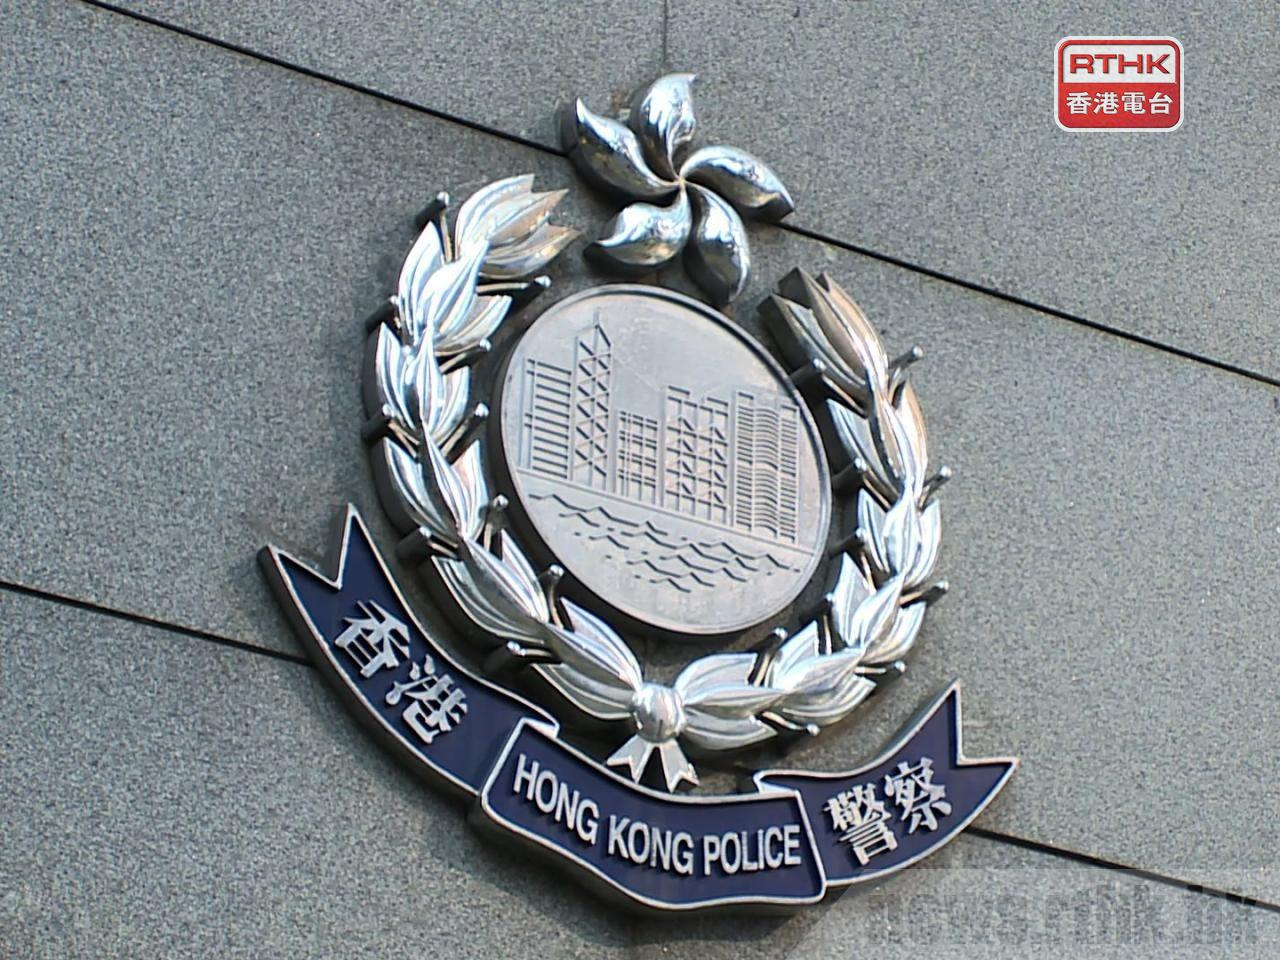 The charges follow a police raid on the now-closed June 4 museum. Photo: RTHK